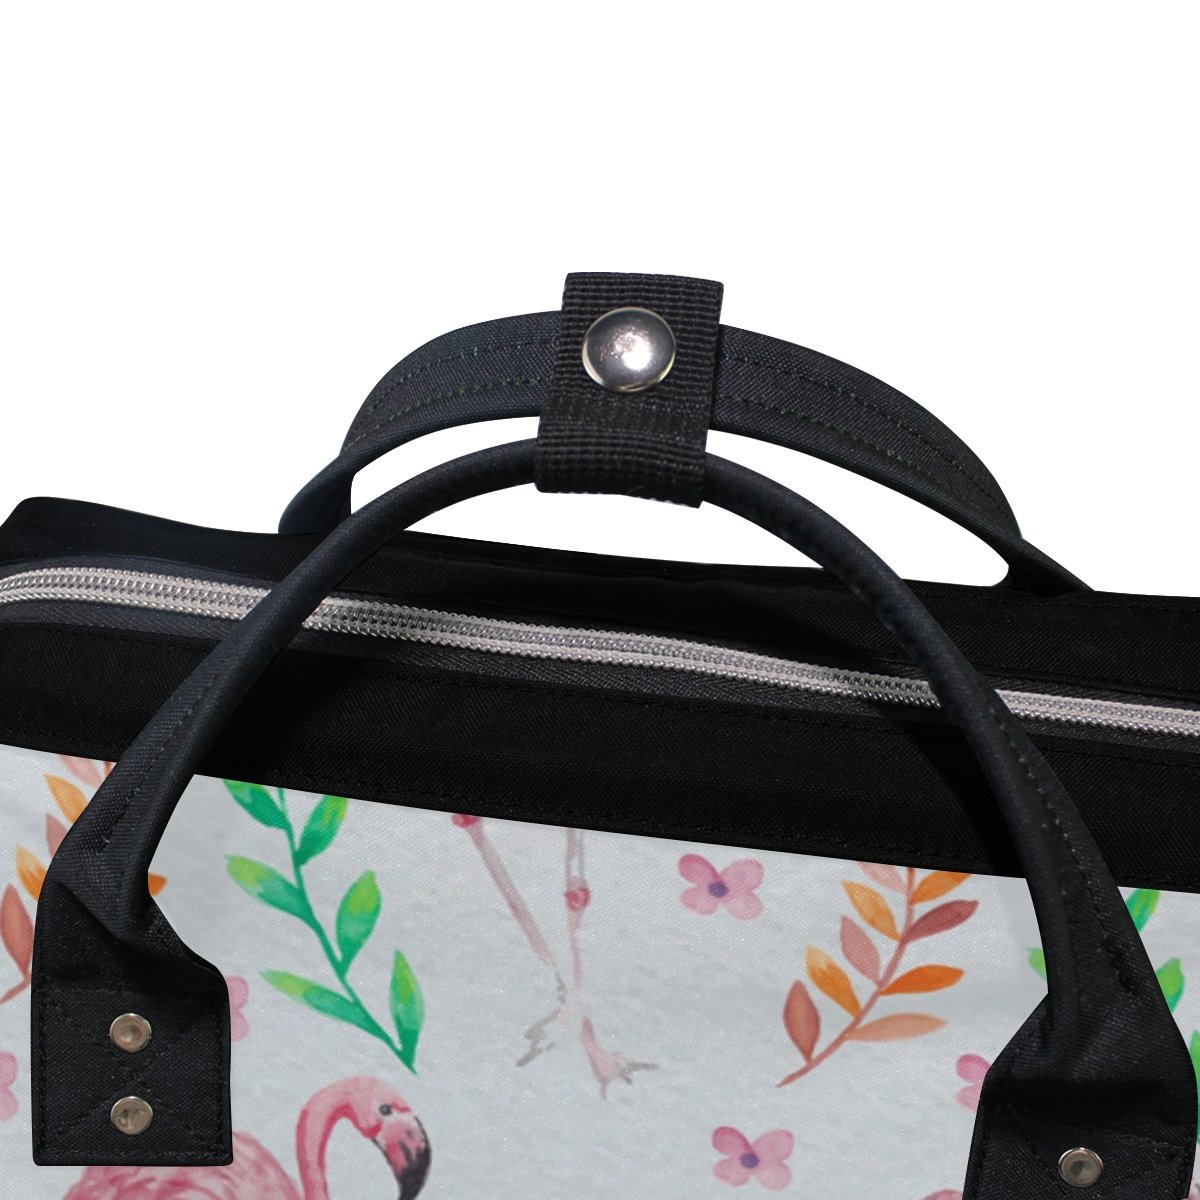 Diaper Bags Backpack Purse Mummy Backpack Fashion Mummy Maternity Nappy Bag Cool Cute Travel Backpack Laptop Backpack with Fresh Watercolor Flamingo Daypack for Women Girls Kids